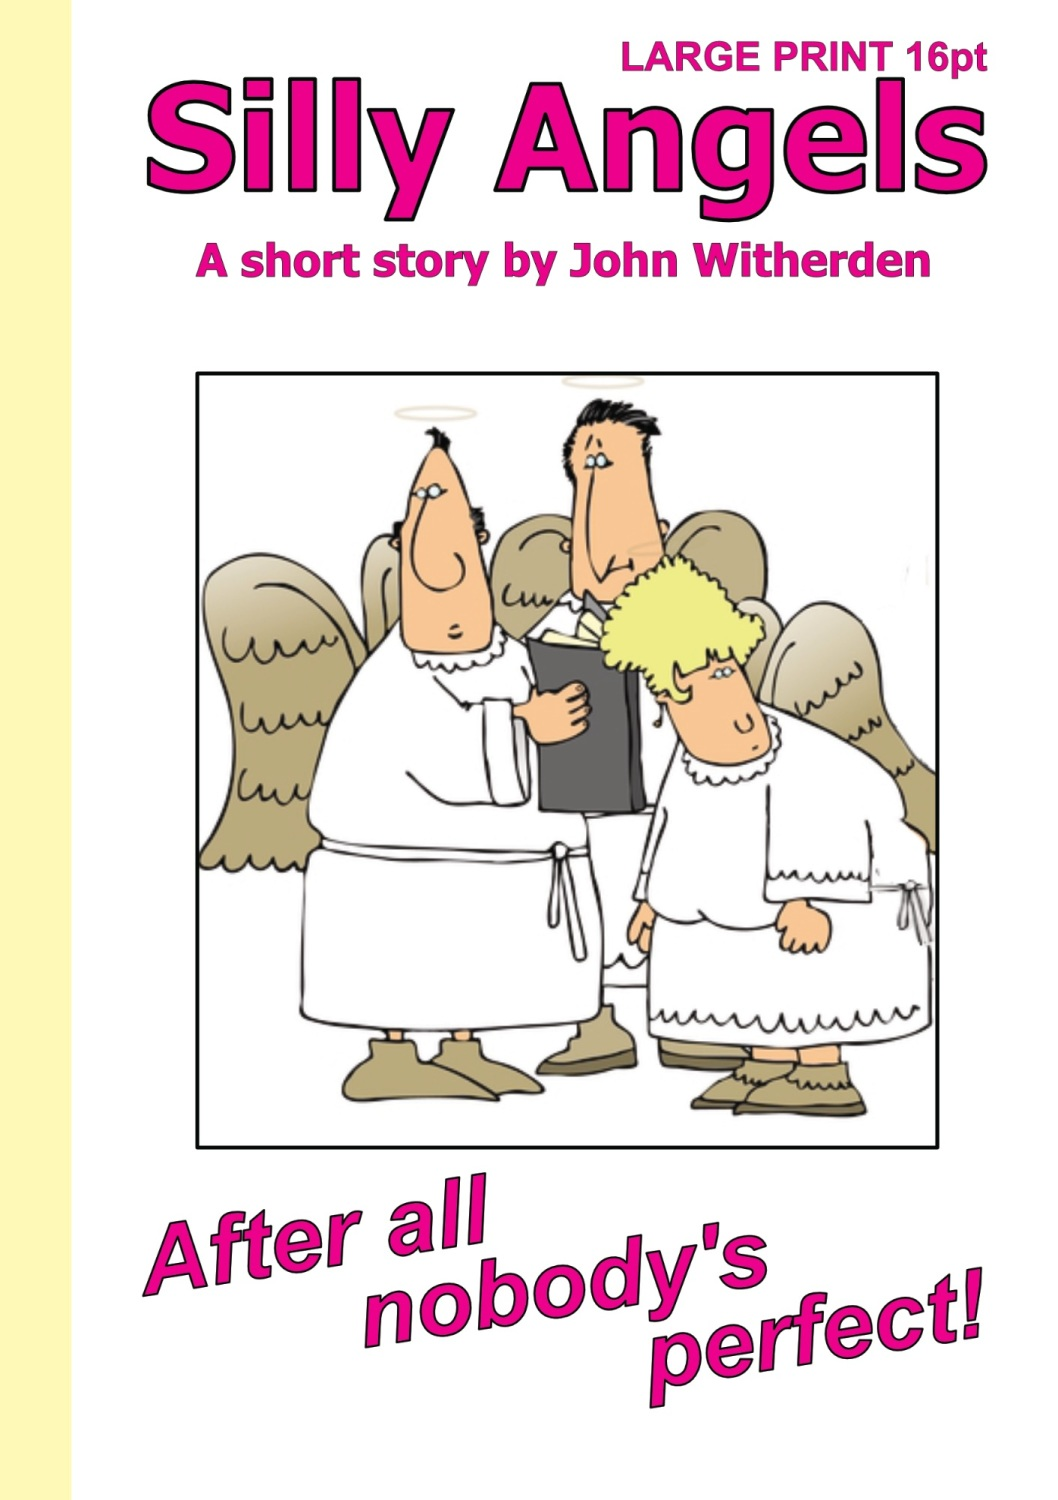 Silly Angels by John Witherden